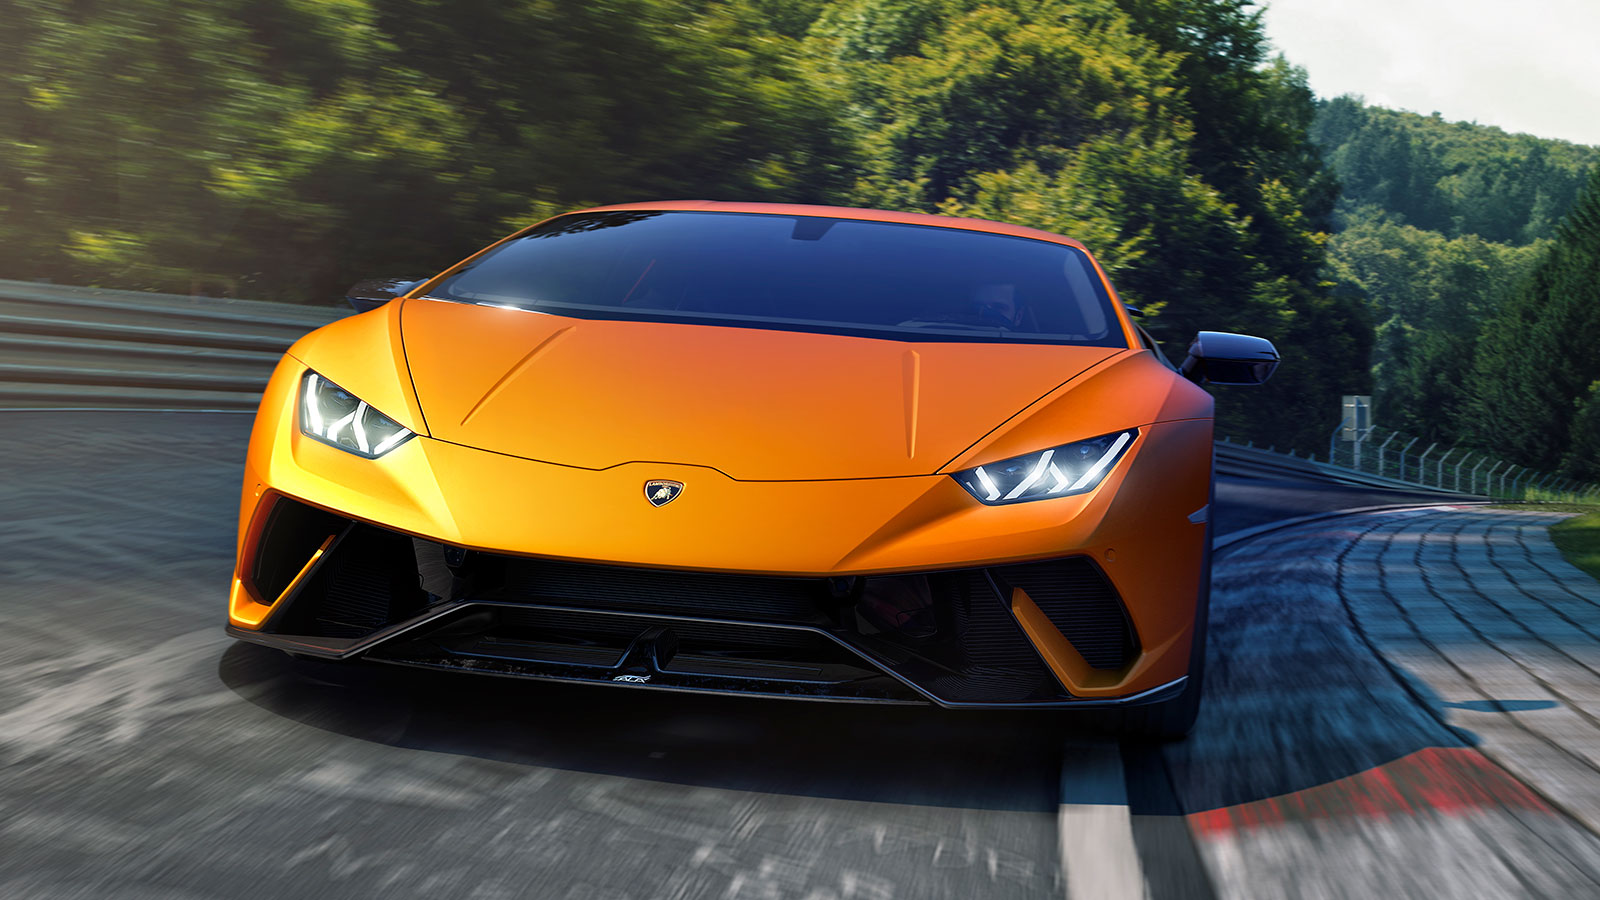 Lamborghini Huracan Performante - Raging Technology image 5